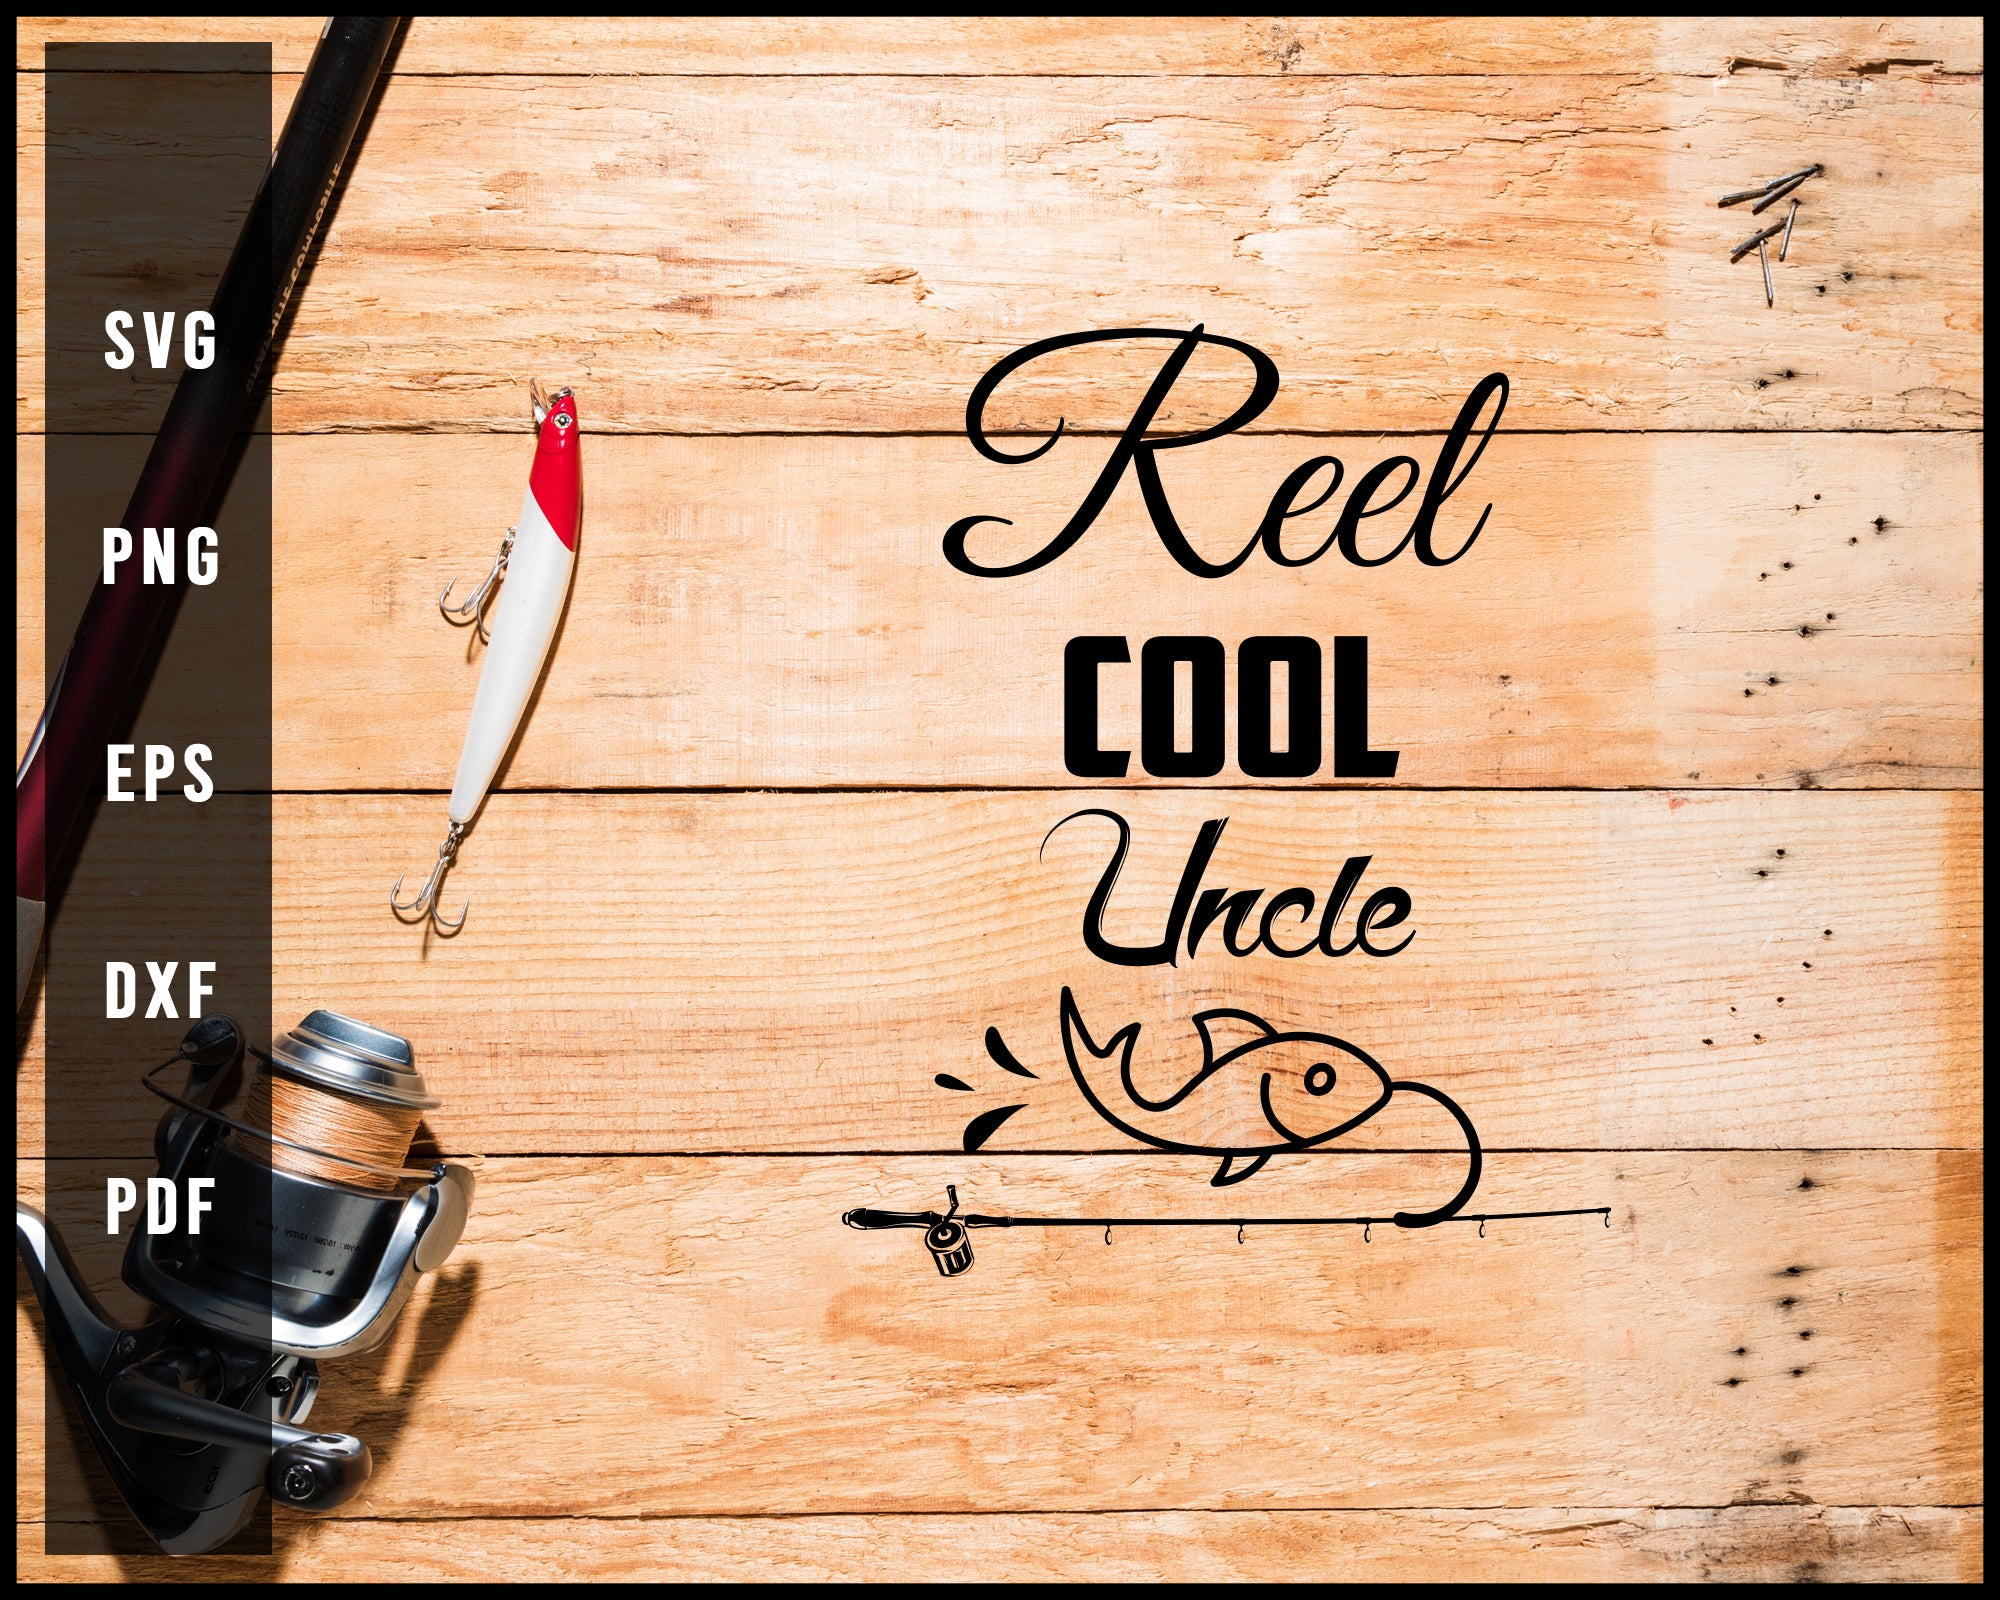 Reel Cool Uncle svg png Silhouette Designs For Cricut And Printable Files